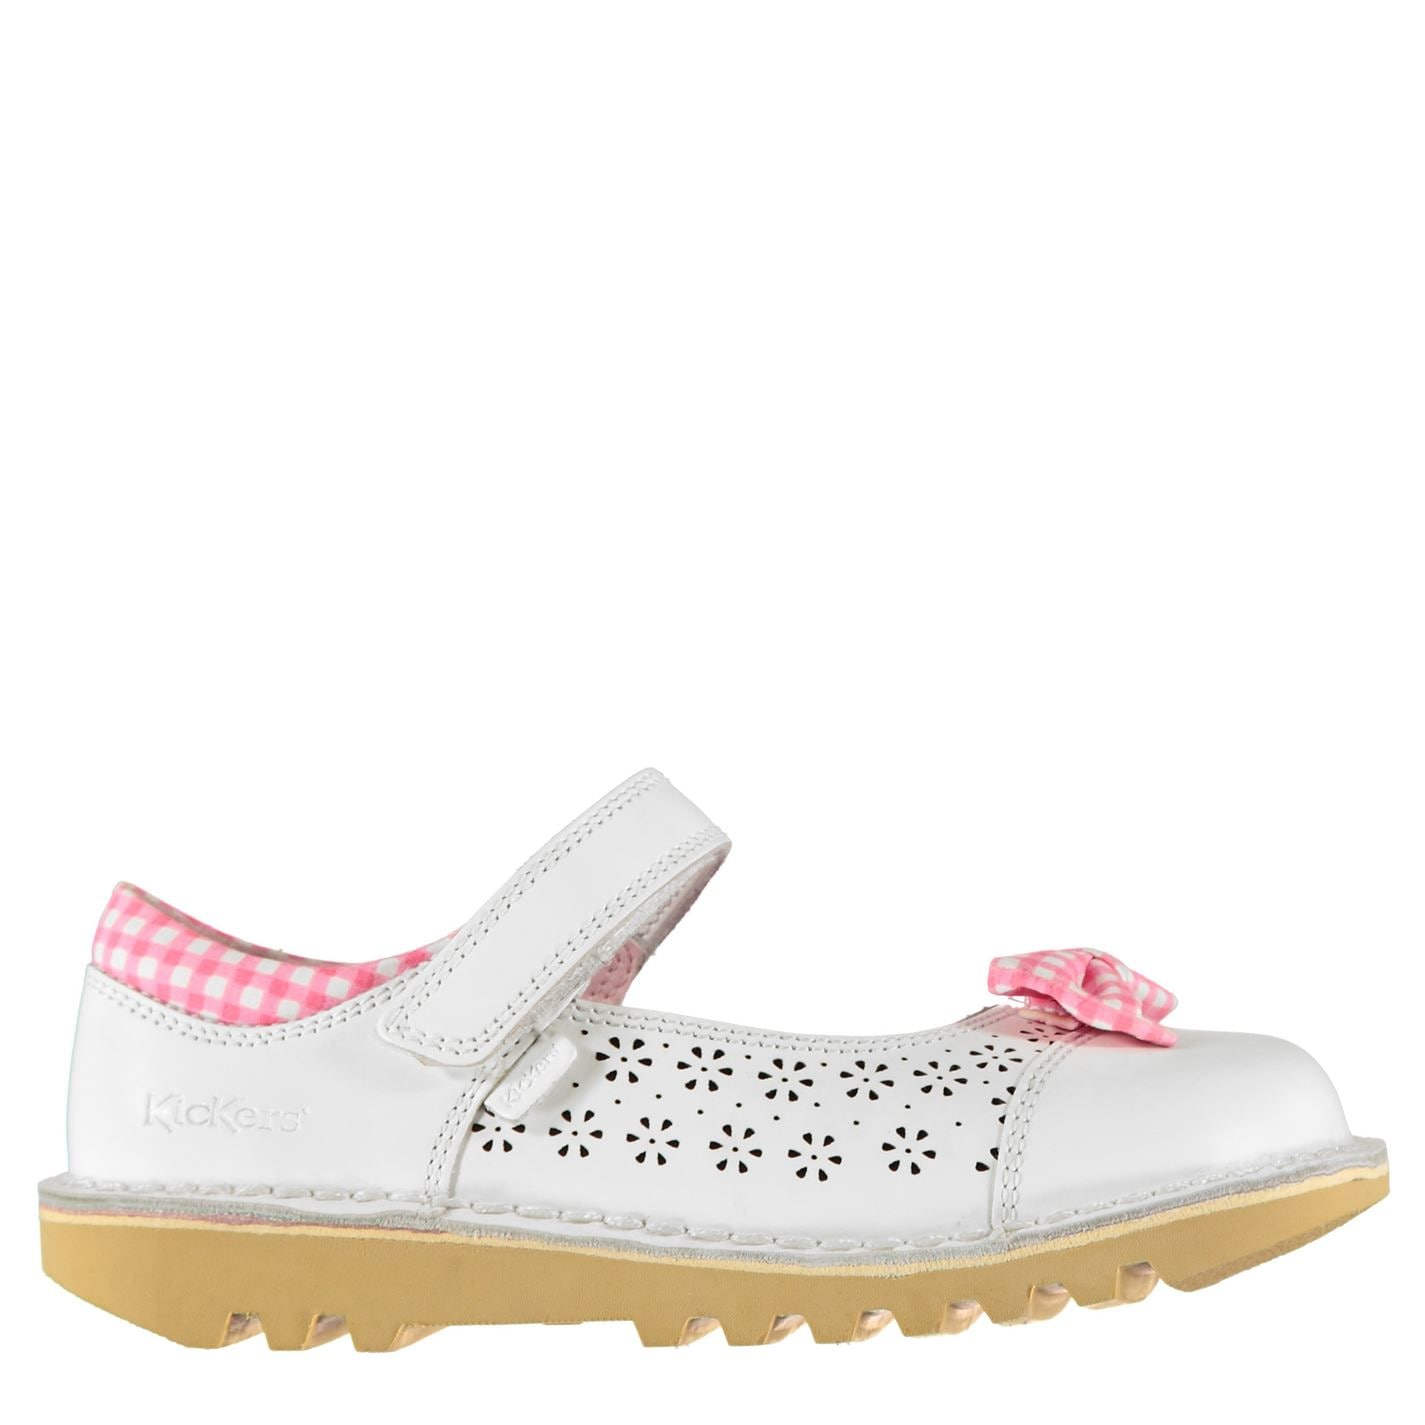 Kickers Kickers Bowtie 2 Infant Girls Shoes White